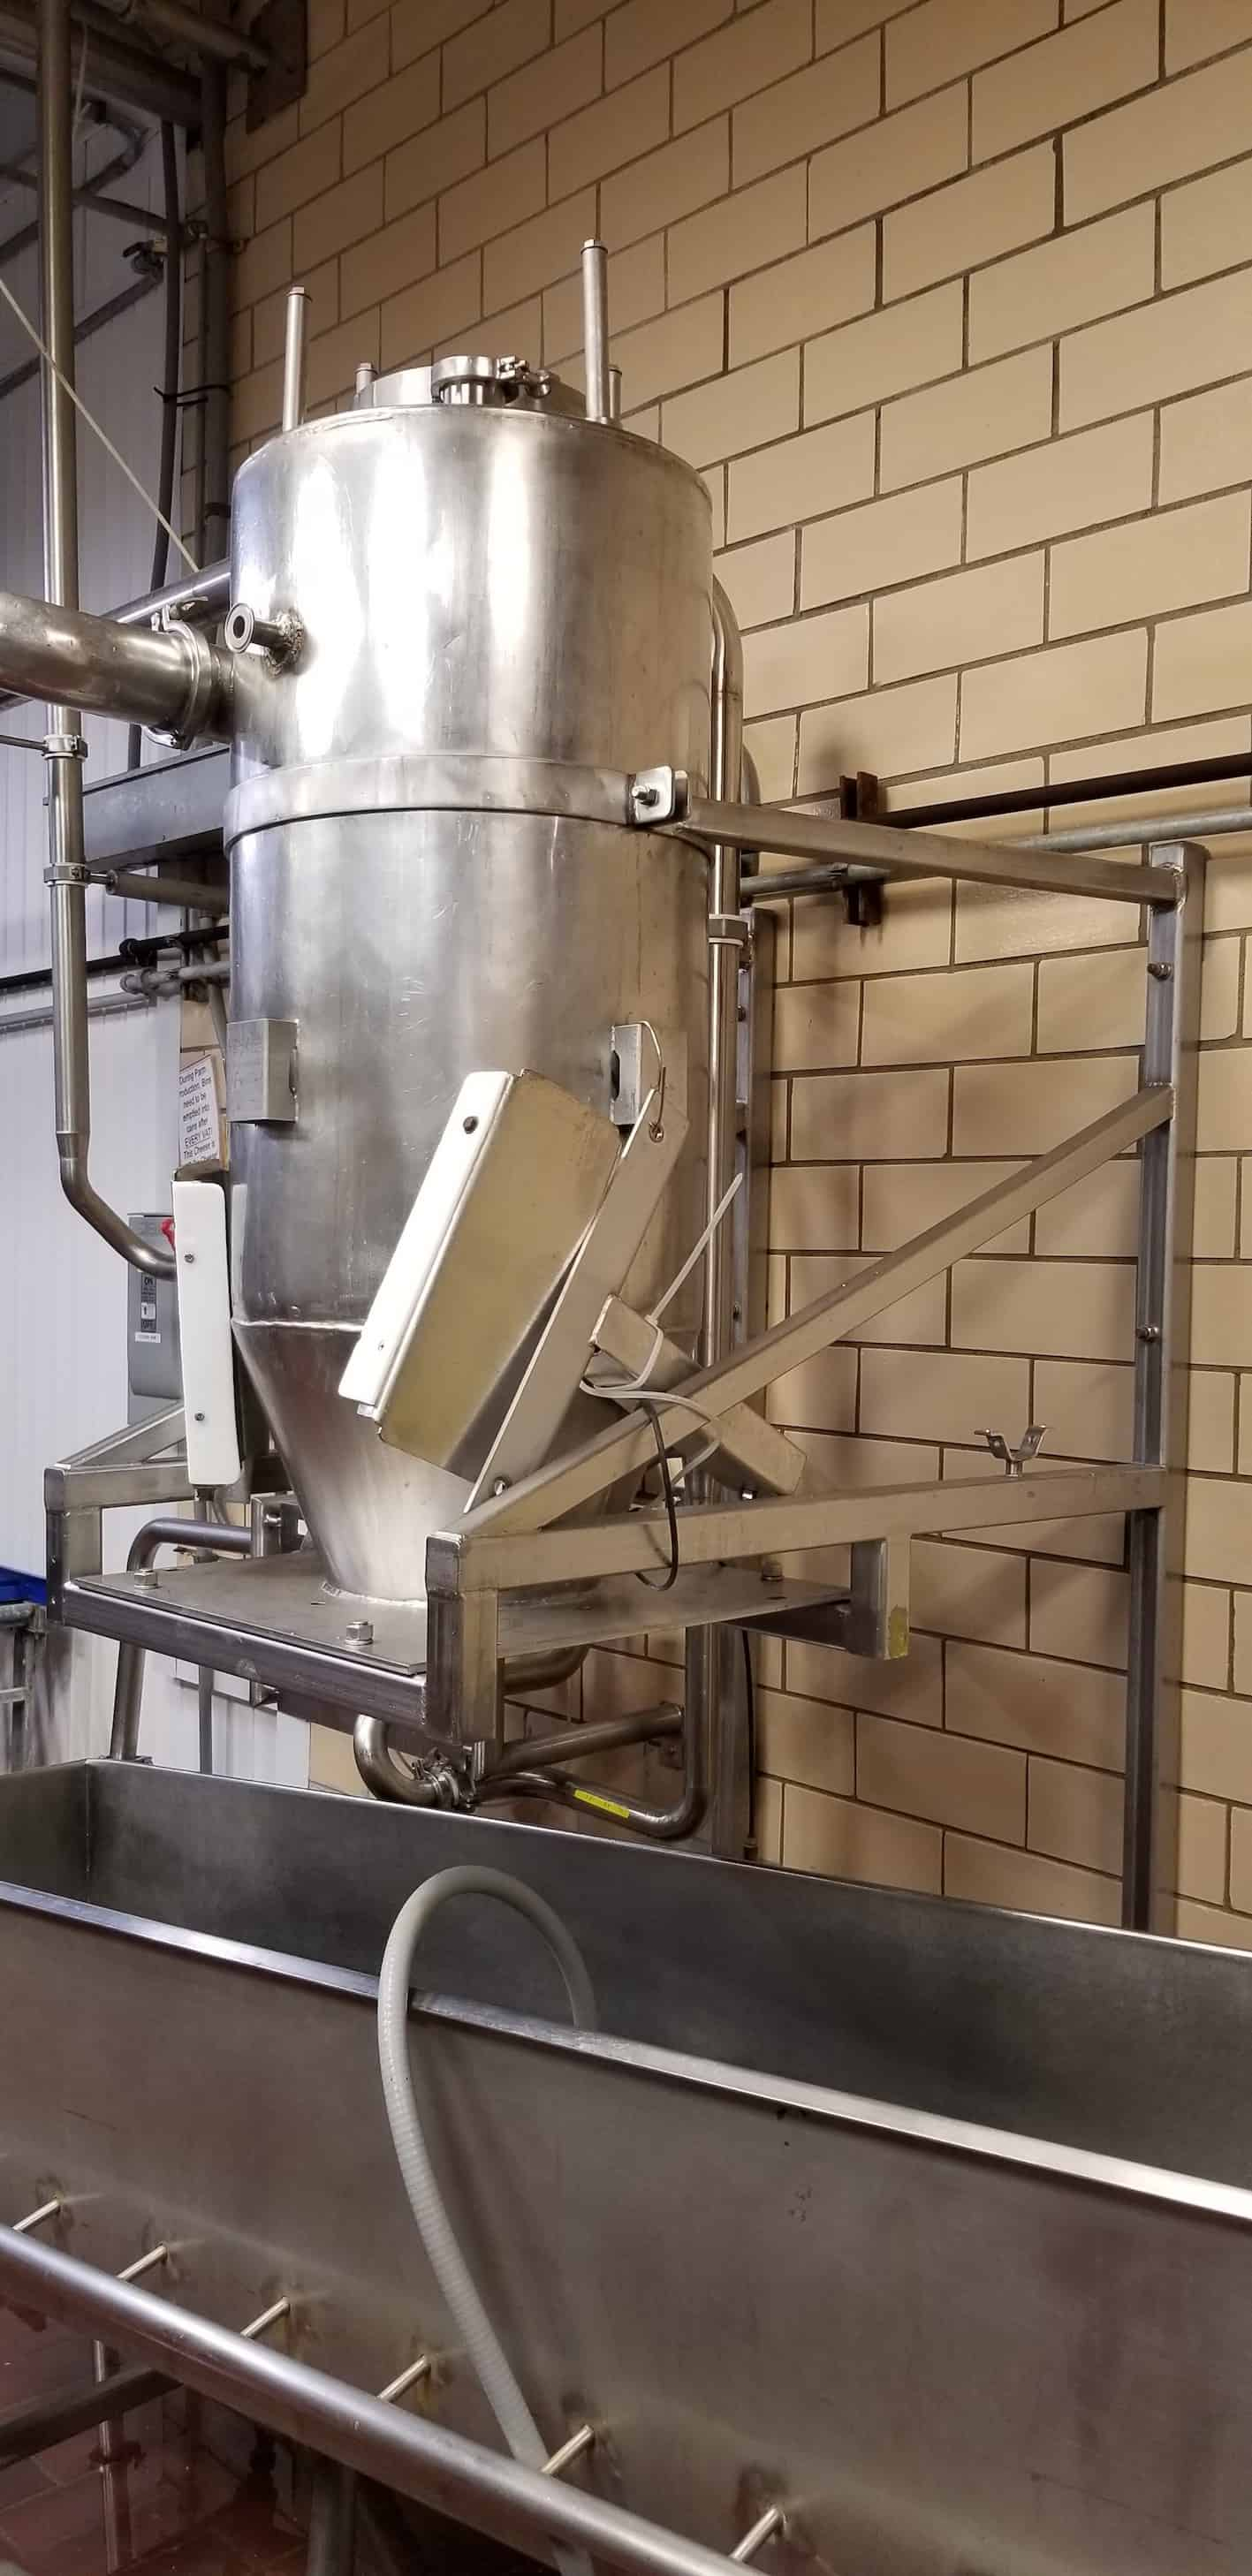 "4' H x 20""W S/S Cheese Cyclone, Mounted on S/S Bracket, Stoelting Curd Blower System, with 25hp Blower, with 1755rpm Motor, 230/460V 3 Phase"